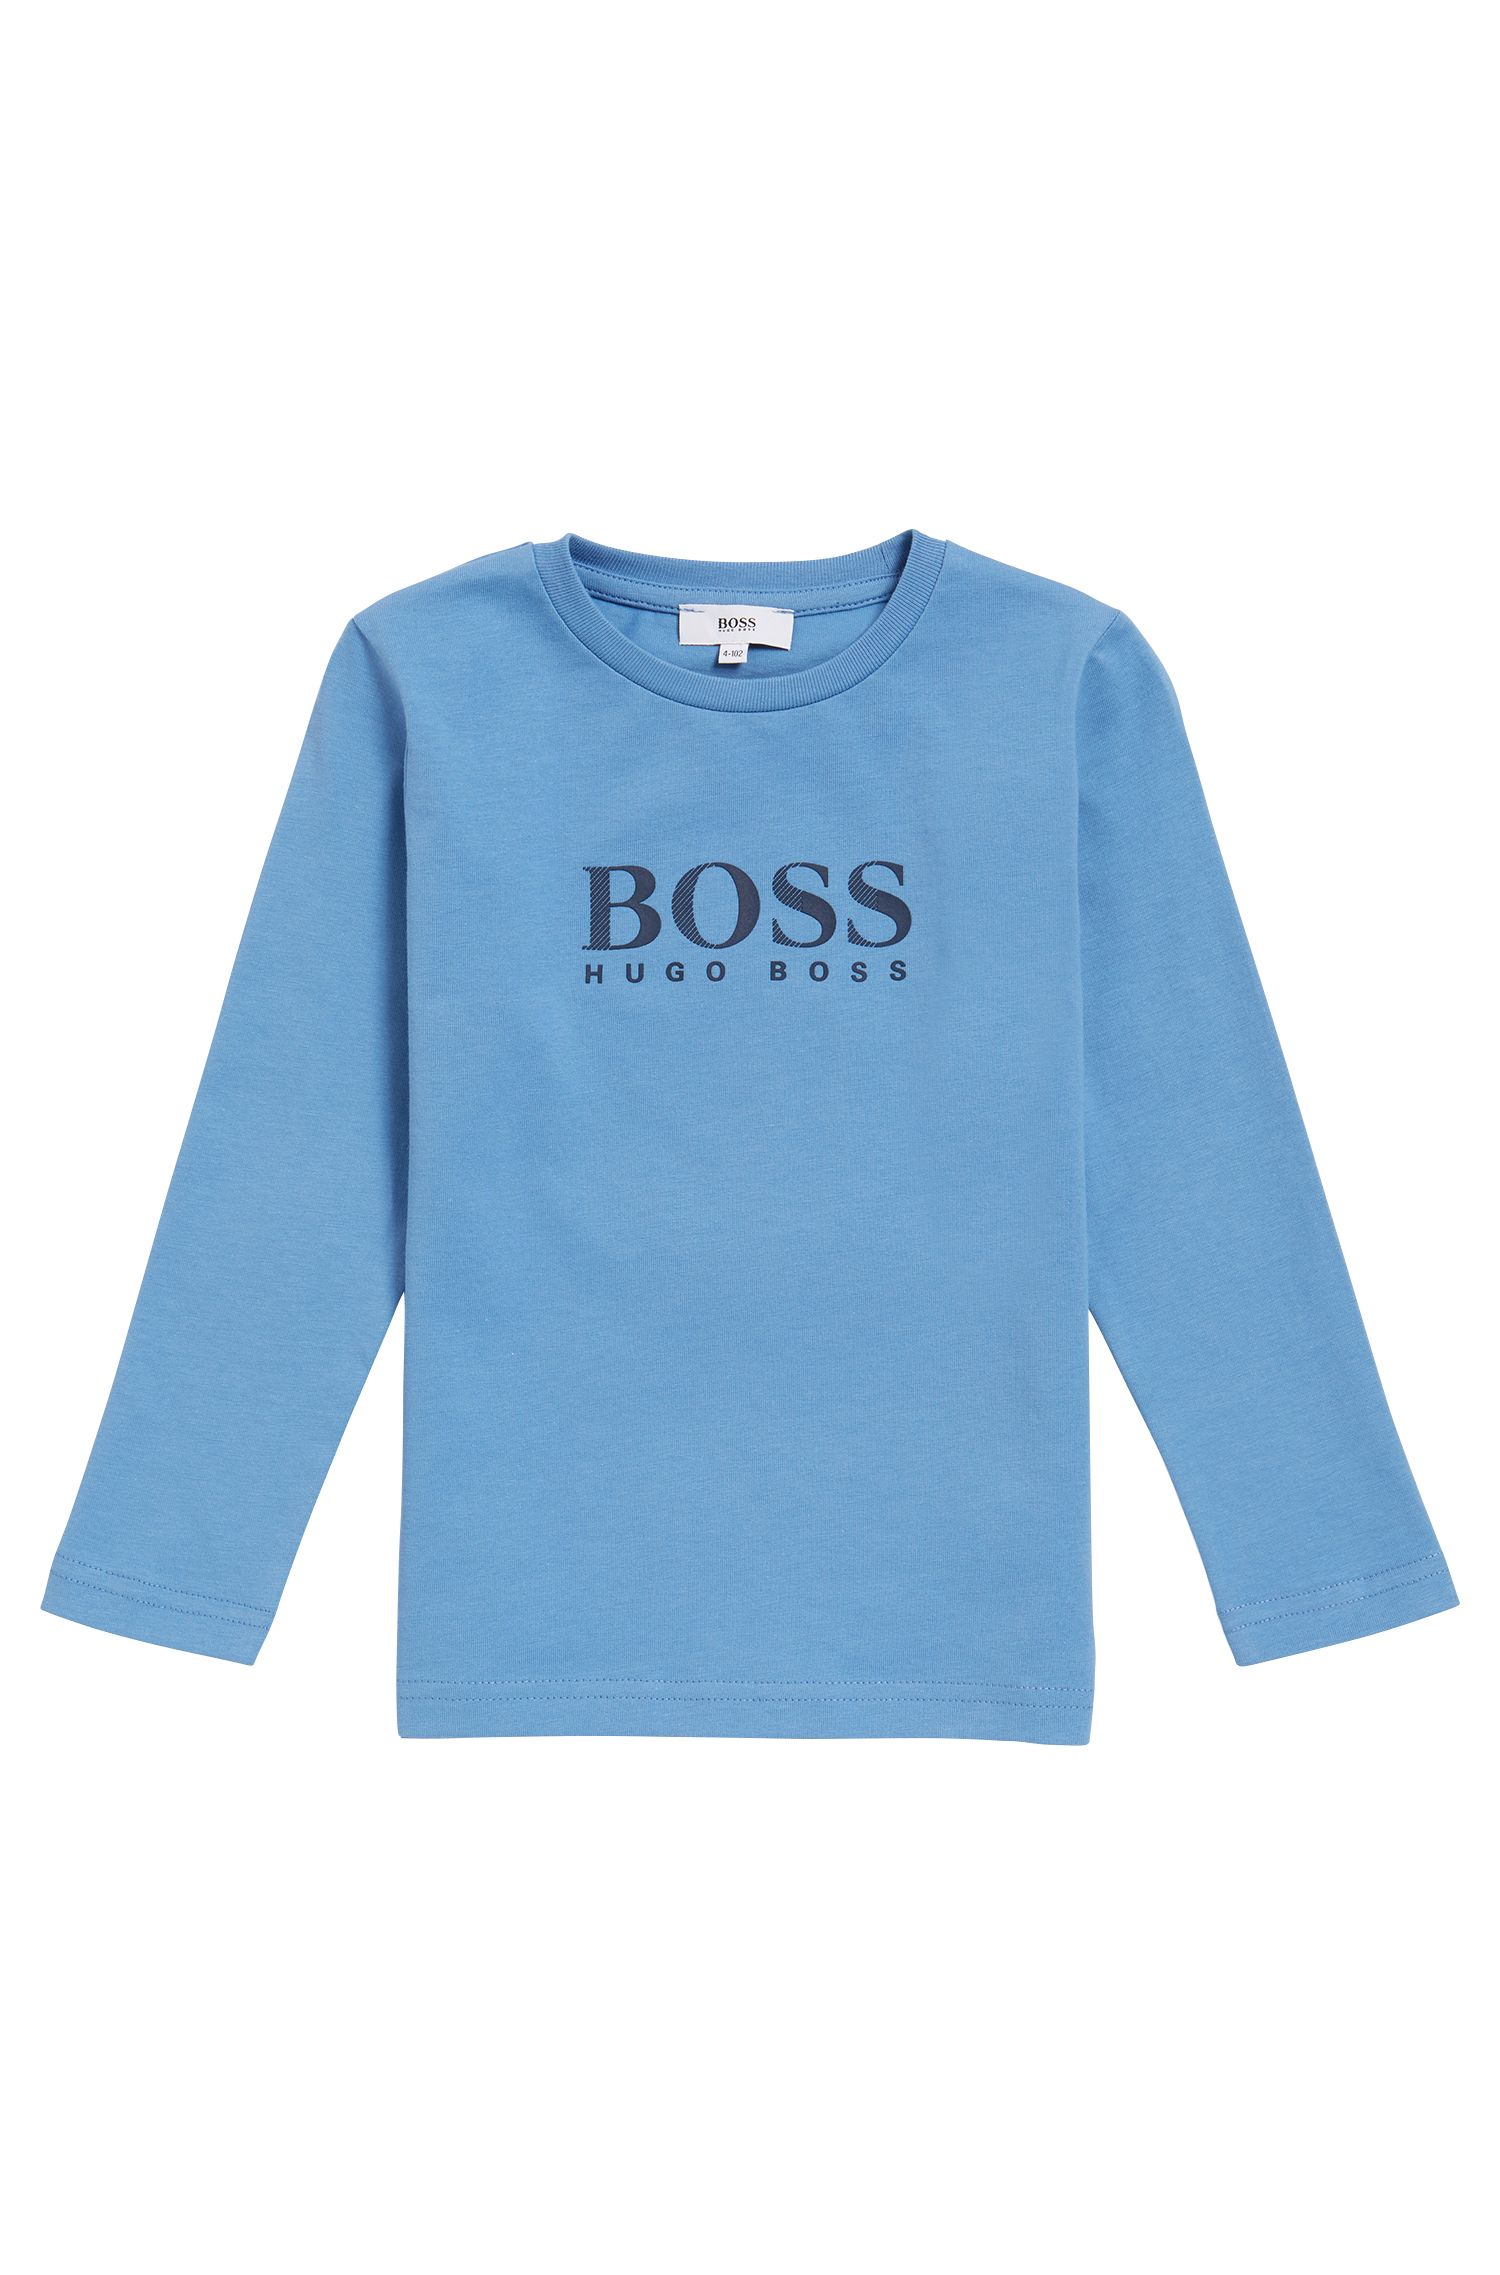 Kids' long-sleeved logo T-shirt in cotton jersey